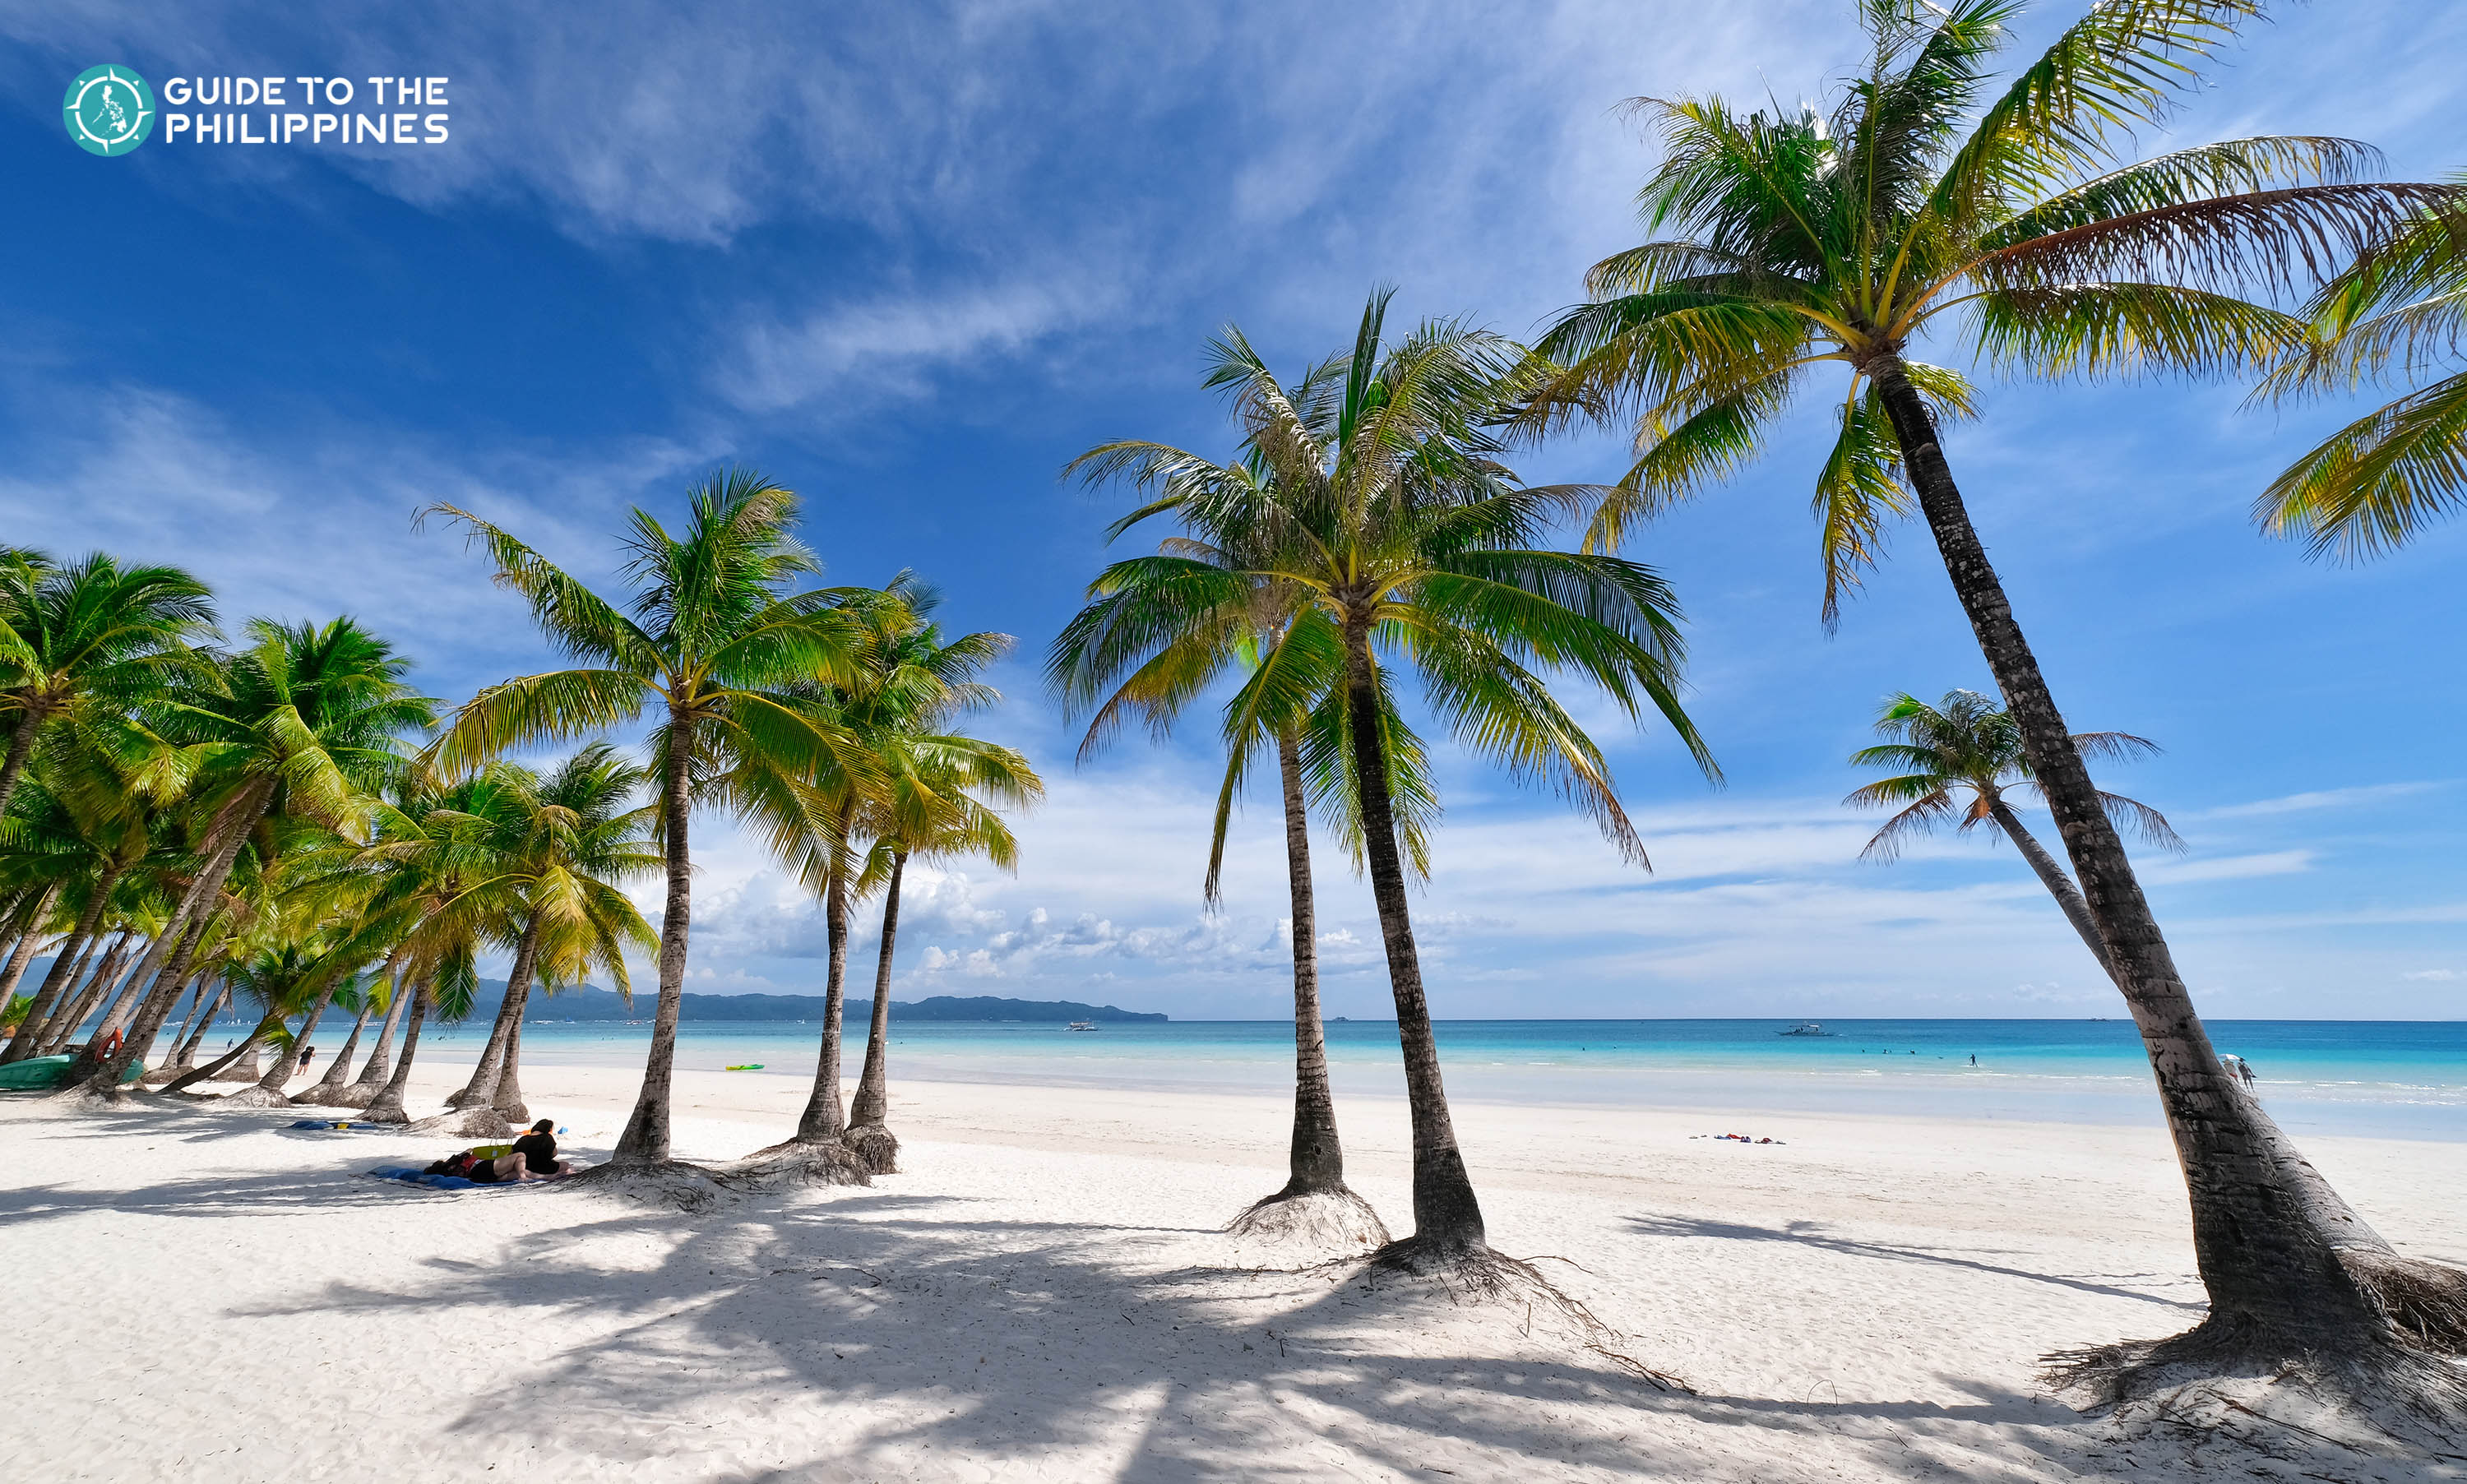 Guide to White Beach in Boracay Island: Activities, Station 1 Hotels, Best Time to Go